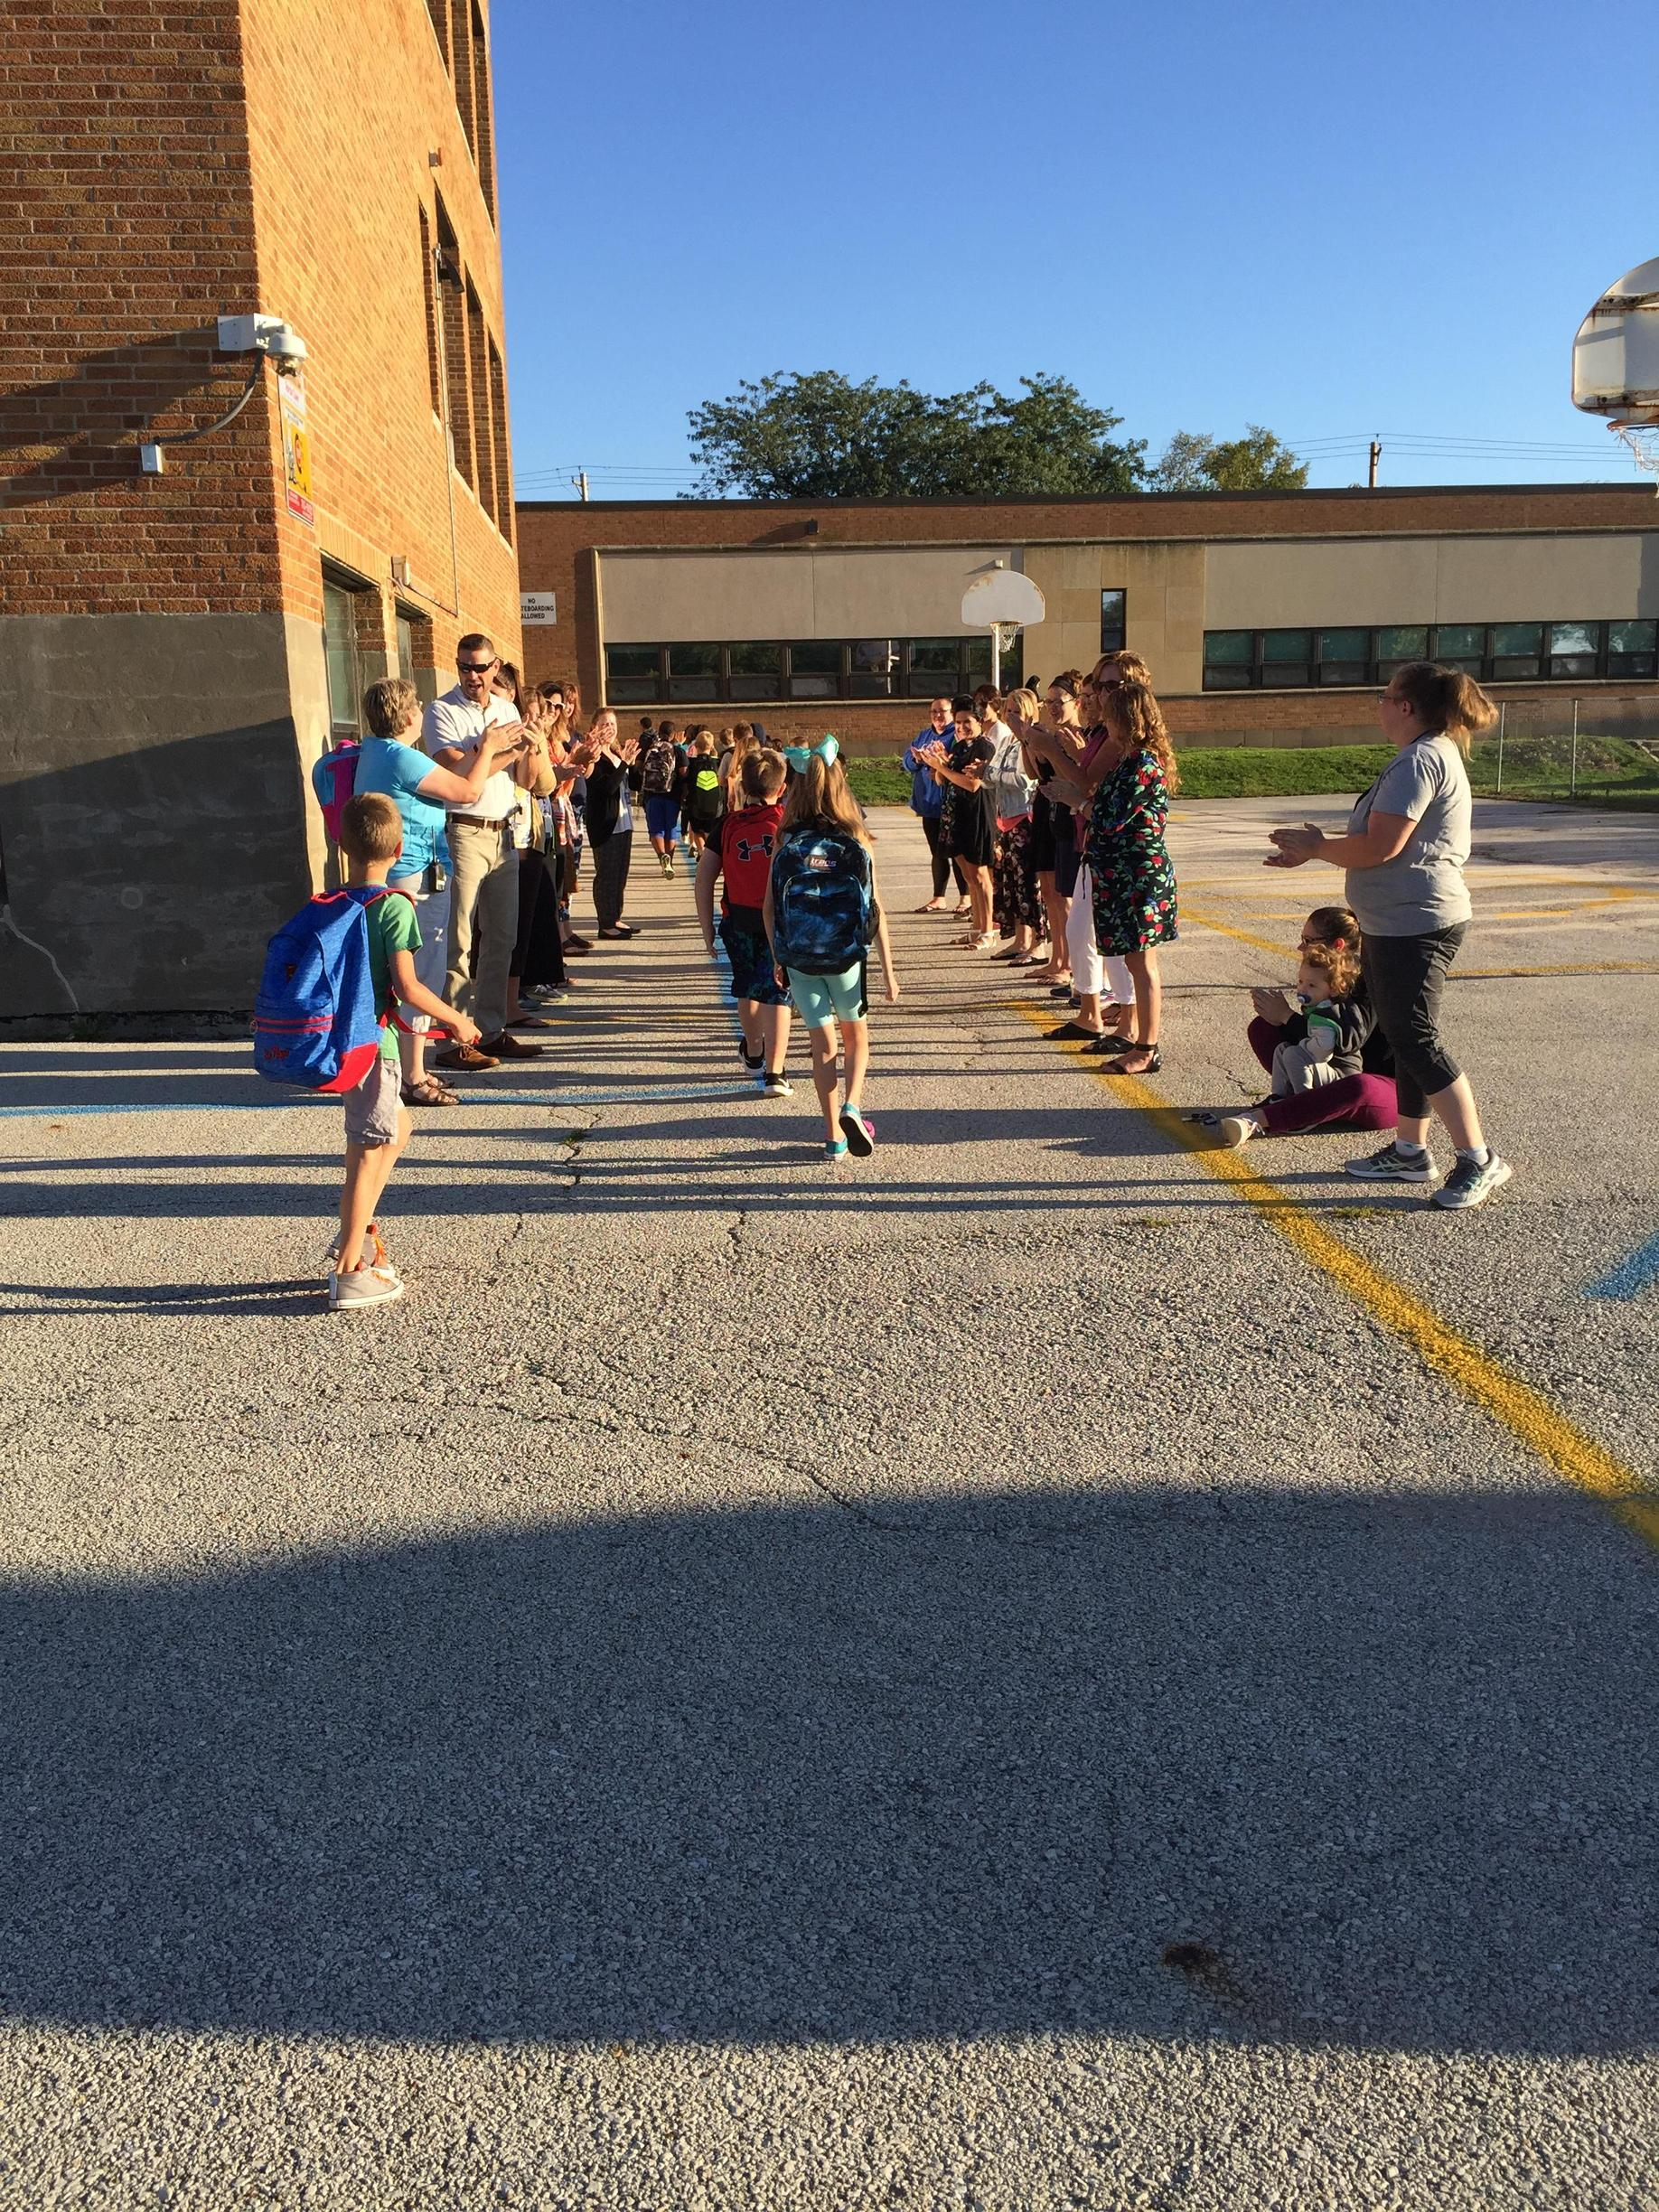 Roosevelt Elementary  students receiving a high five as they enter school.